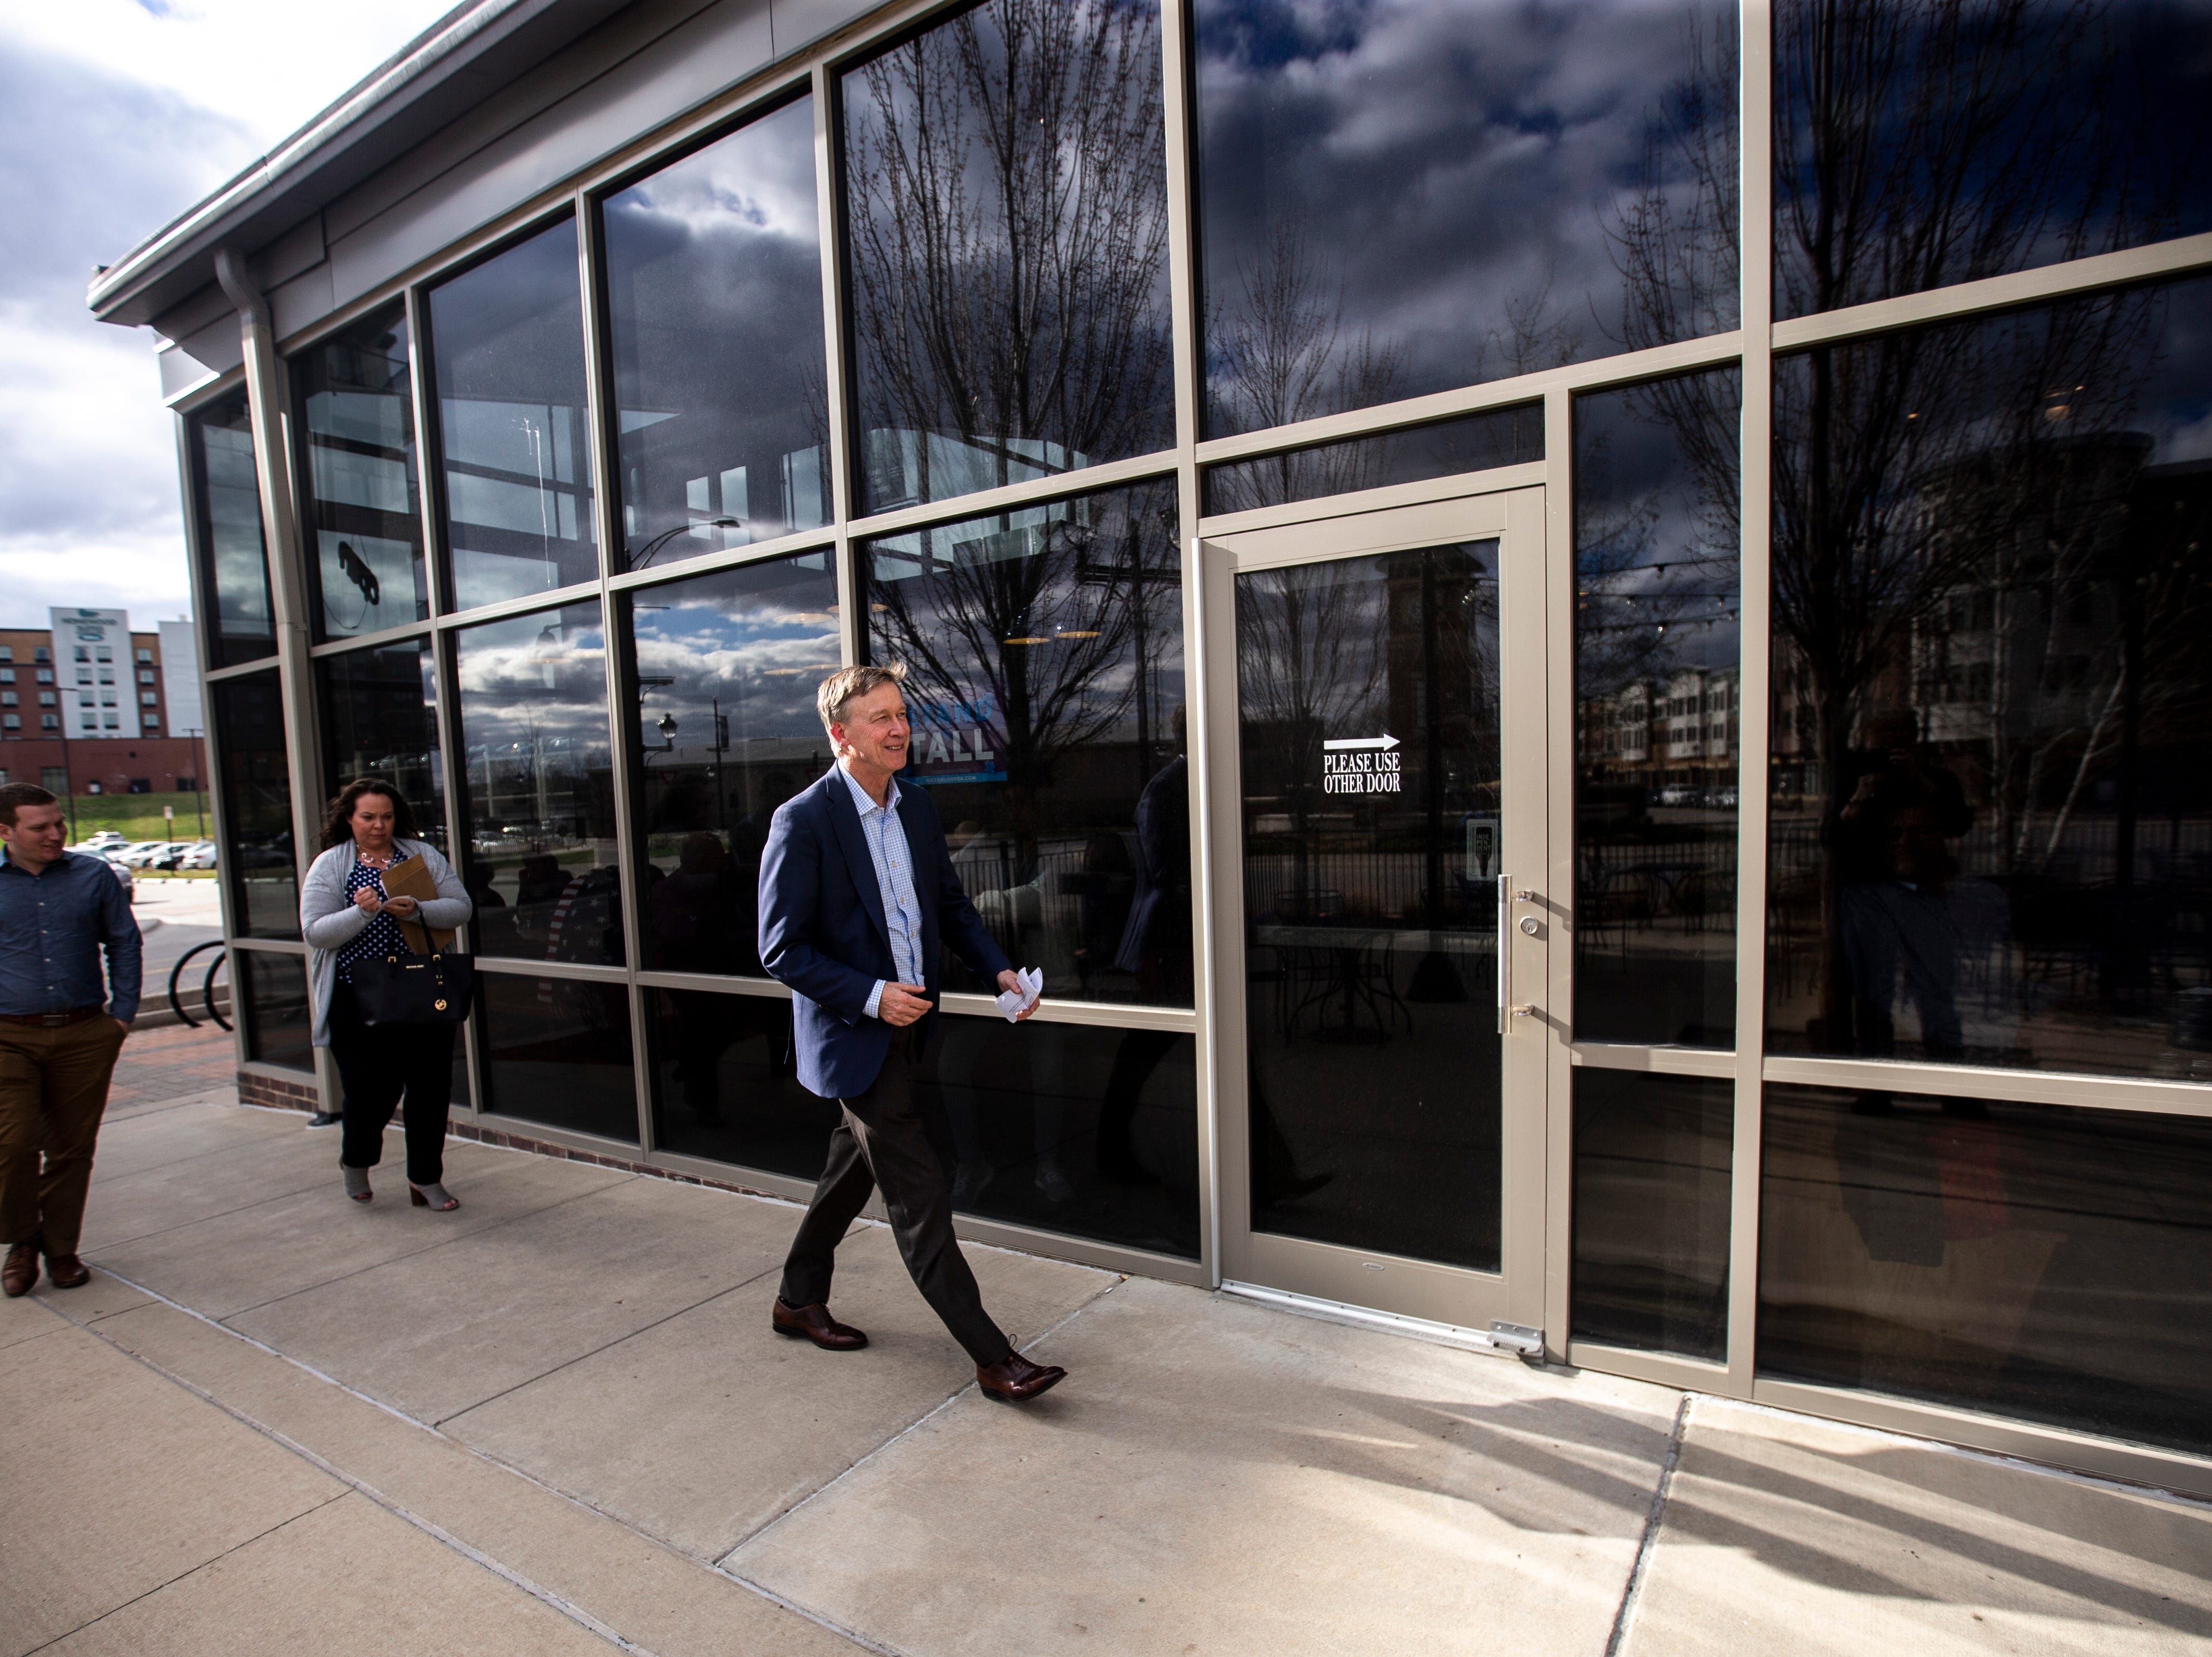 Democratic presidential candidate and former Colorado Gov. John Hickenlooper arrives at an event on Friday, April 12, 2019, at Backpocket Brewing in Coralville, Iowa.